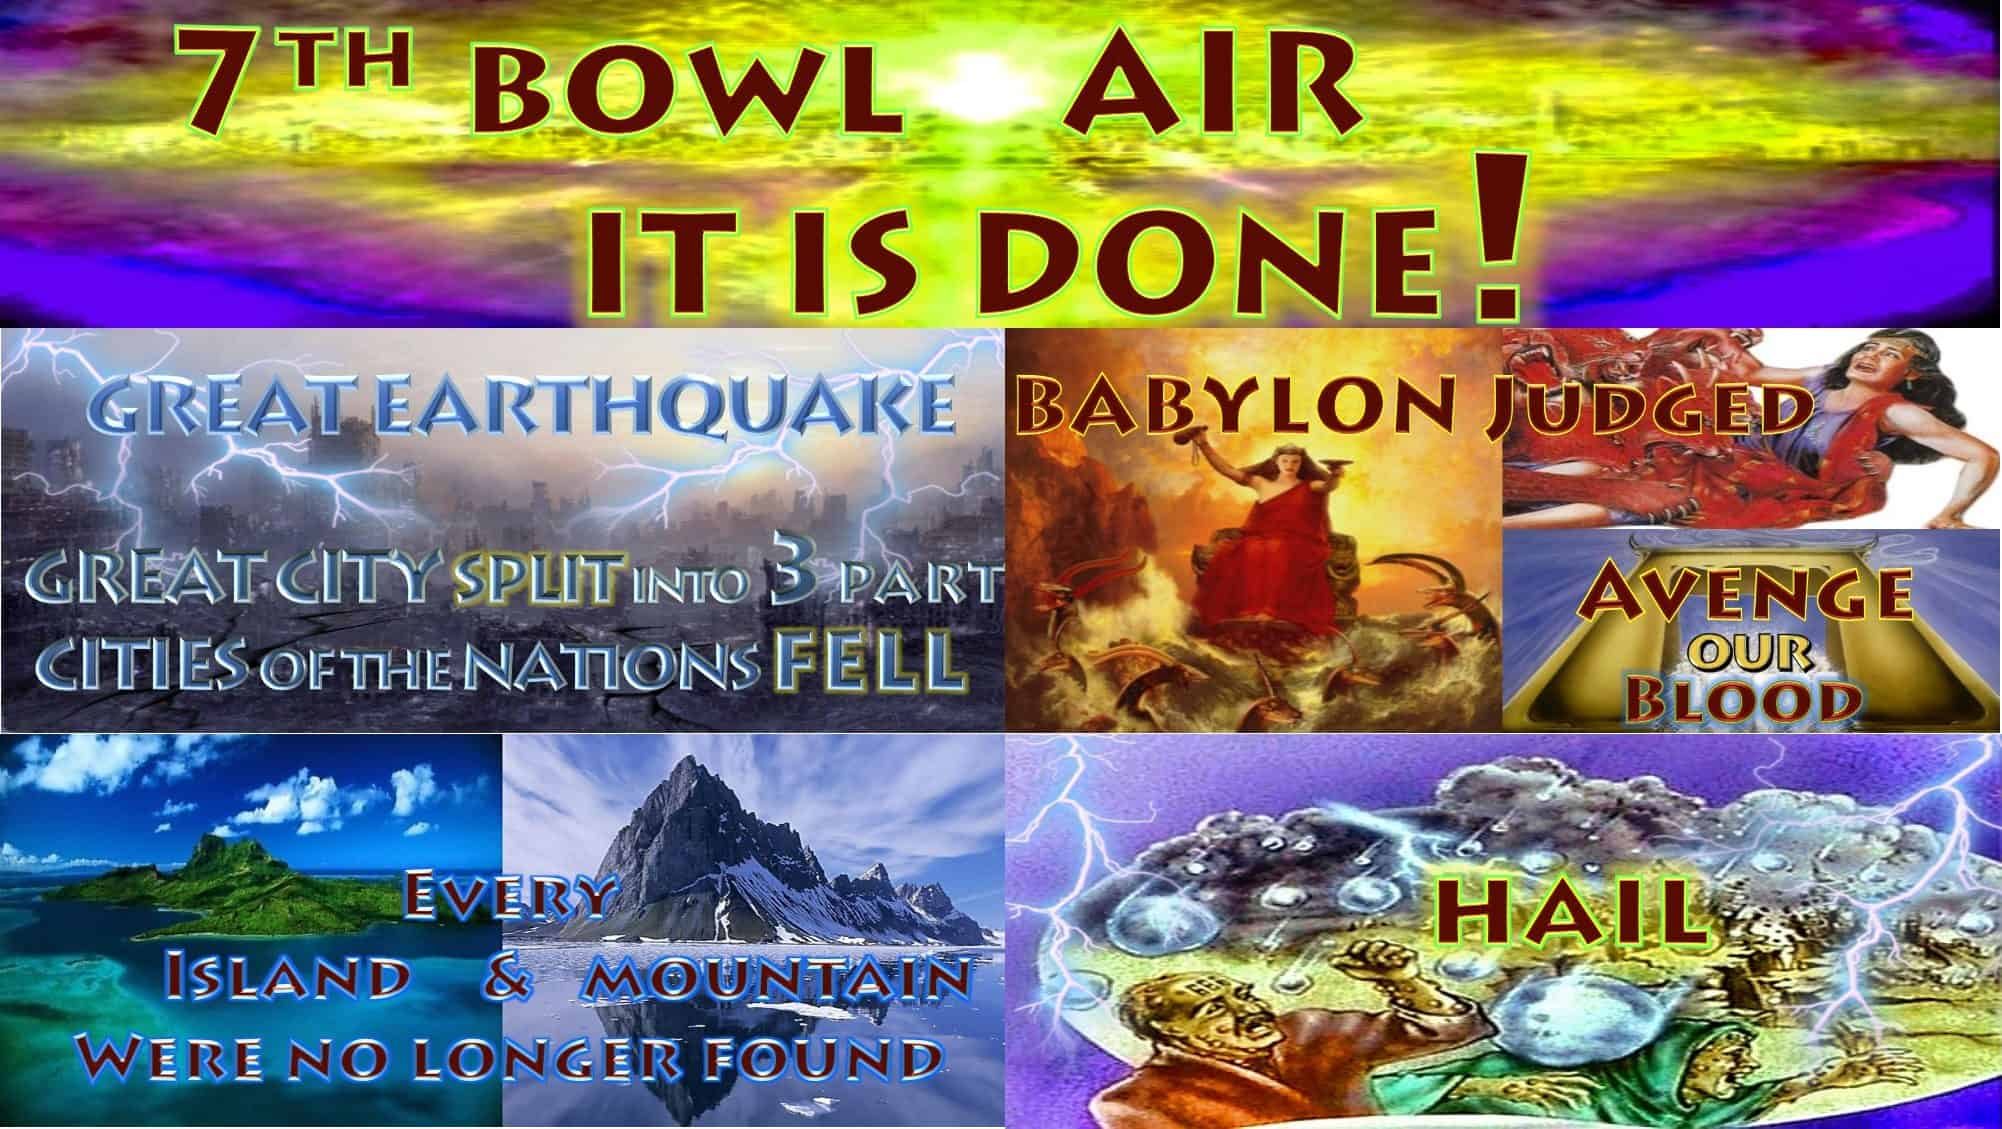 7th Vial of Wrath - Air - It is Done - It is Finished - 7 Bowls of Wrath of the Book of Revelation